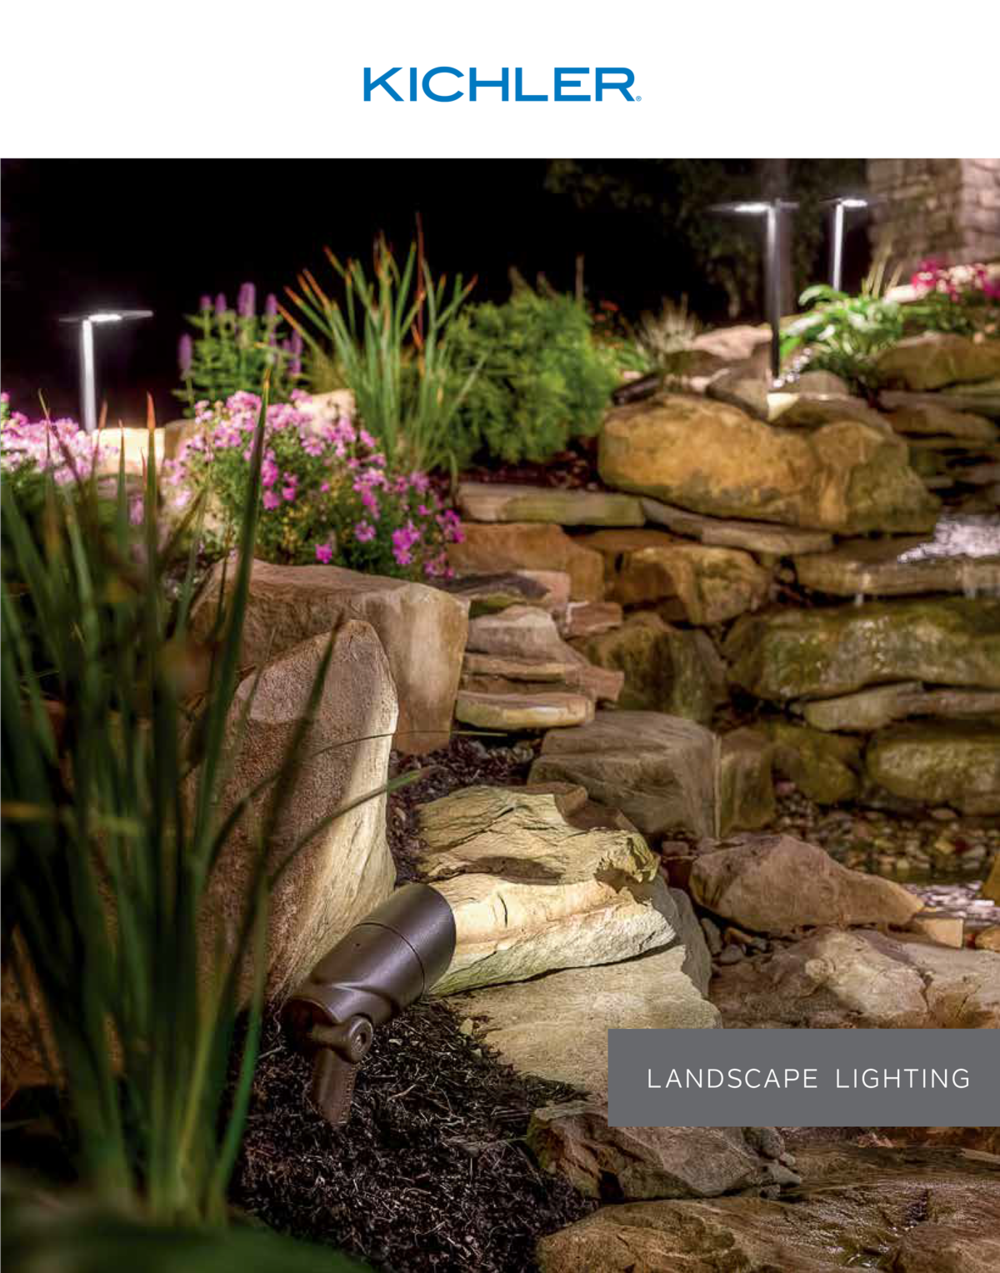 Kichler landscape lighting -